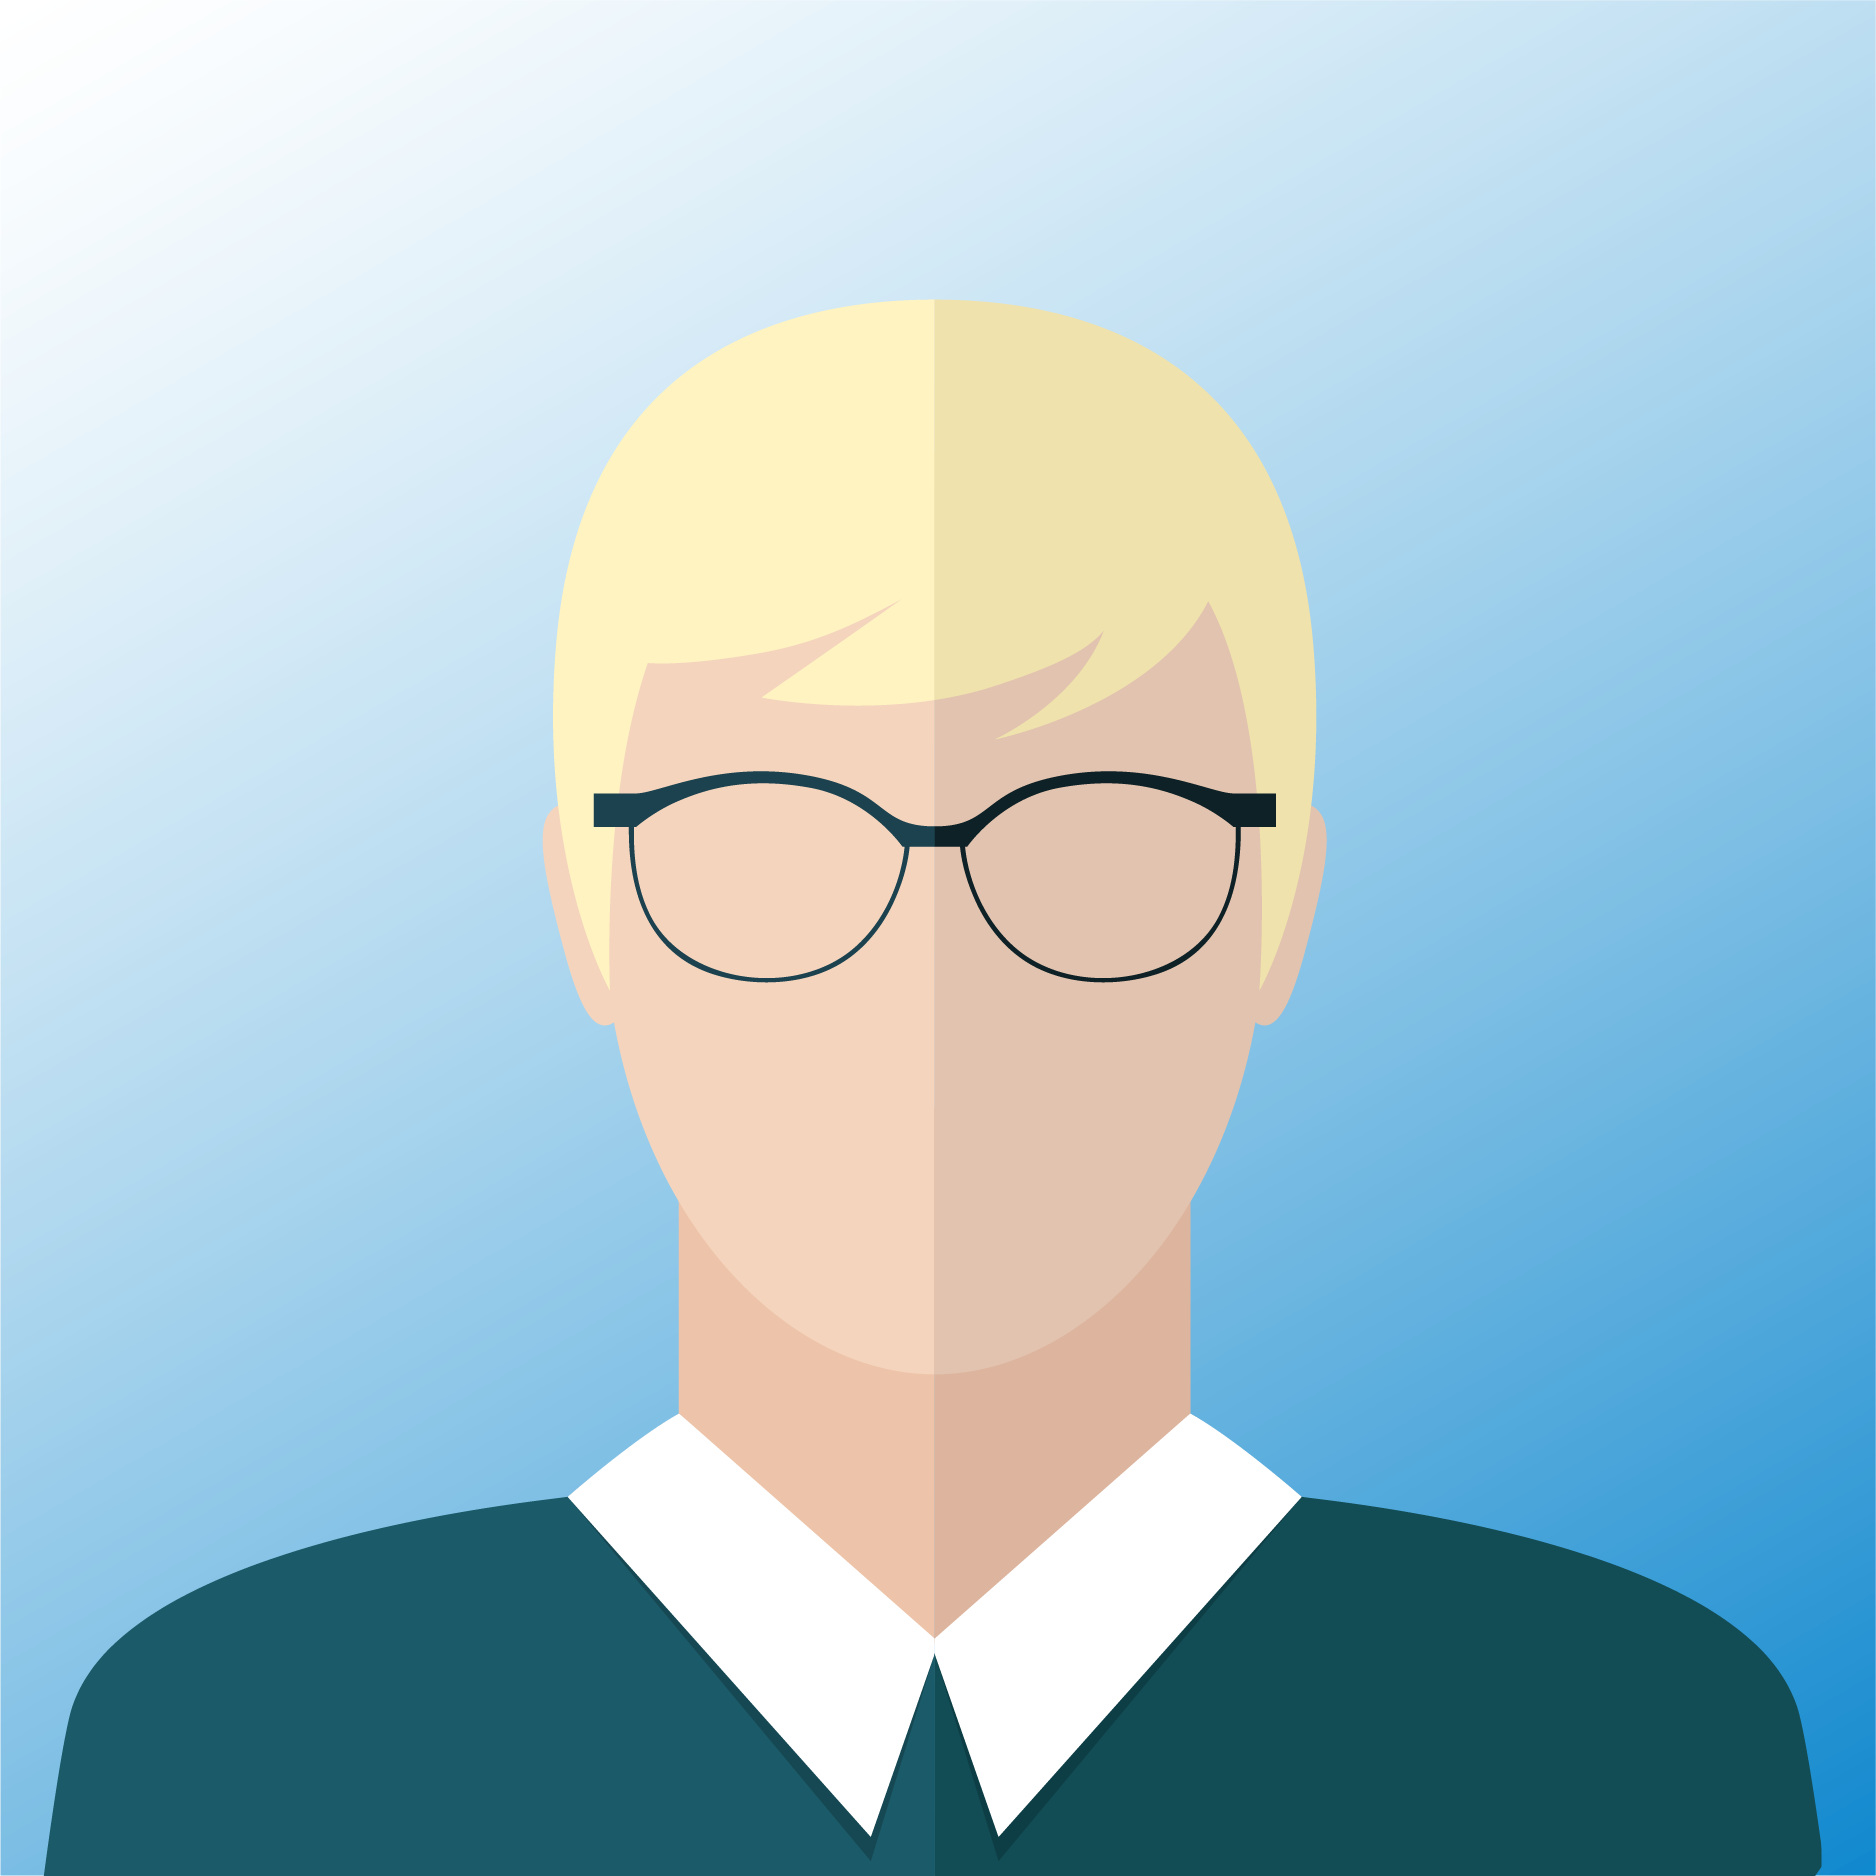 vector of man with blond hair